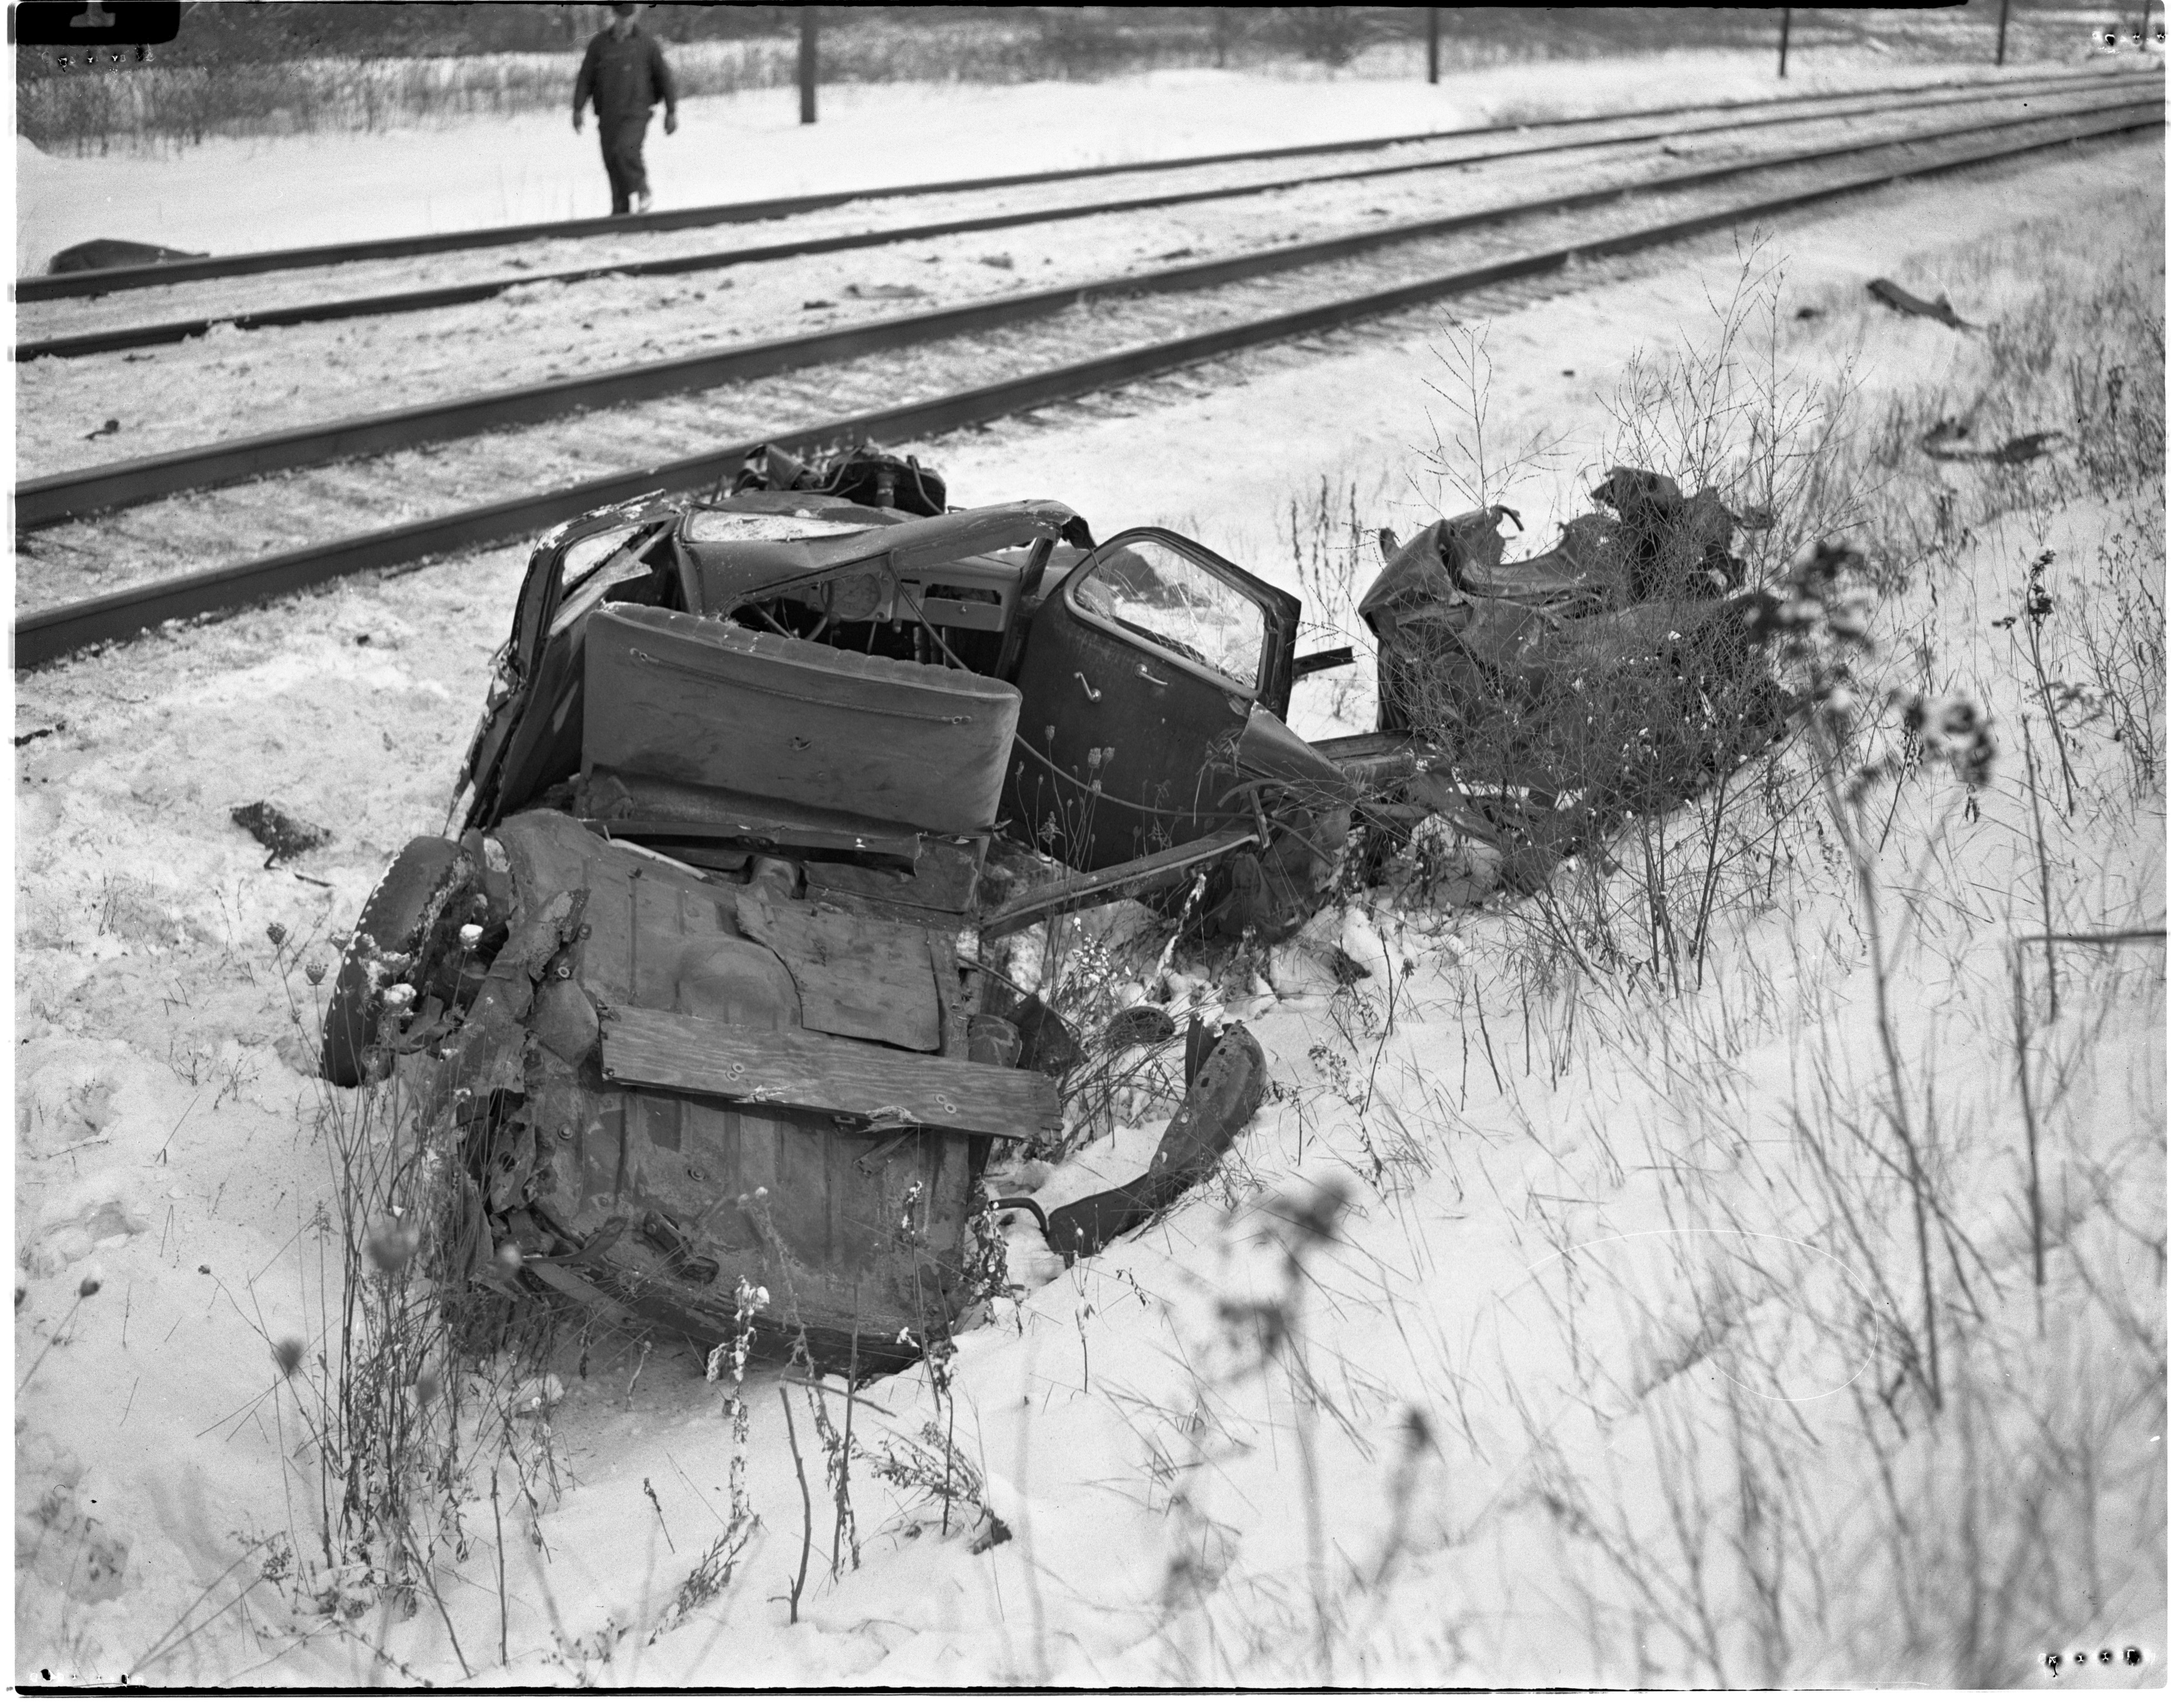 Frederick L. Seyfried's Car Demolished By A Passenger Train, November 1950 image